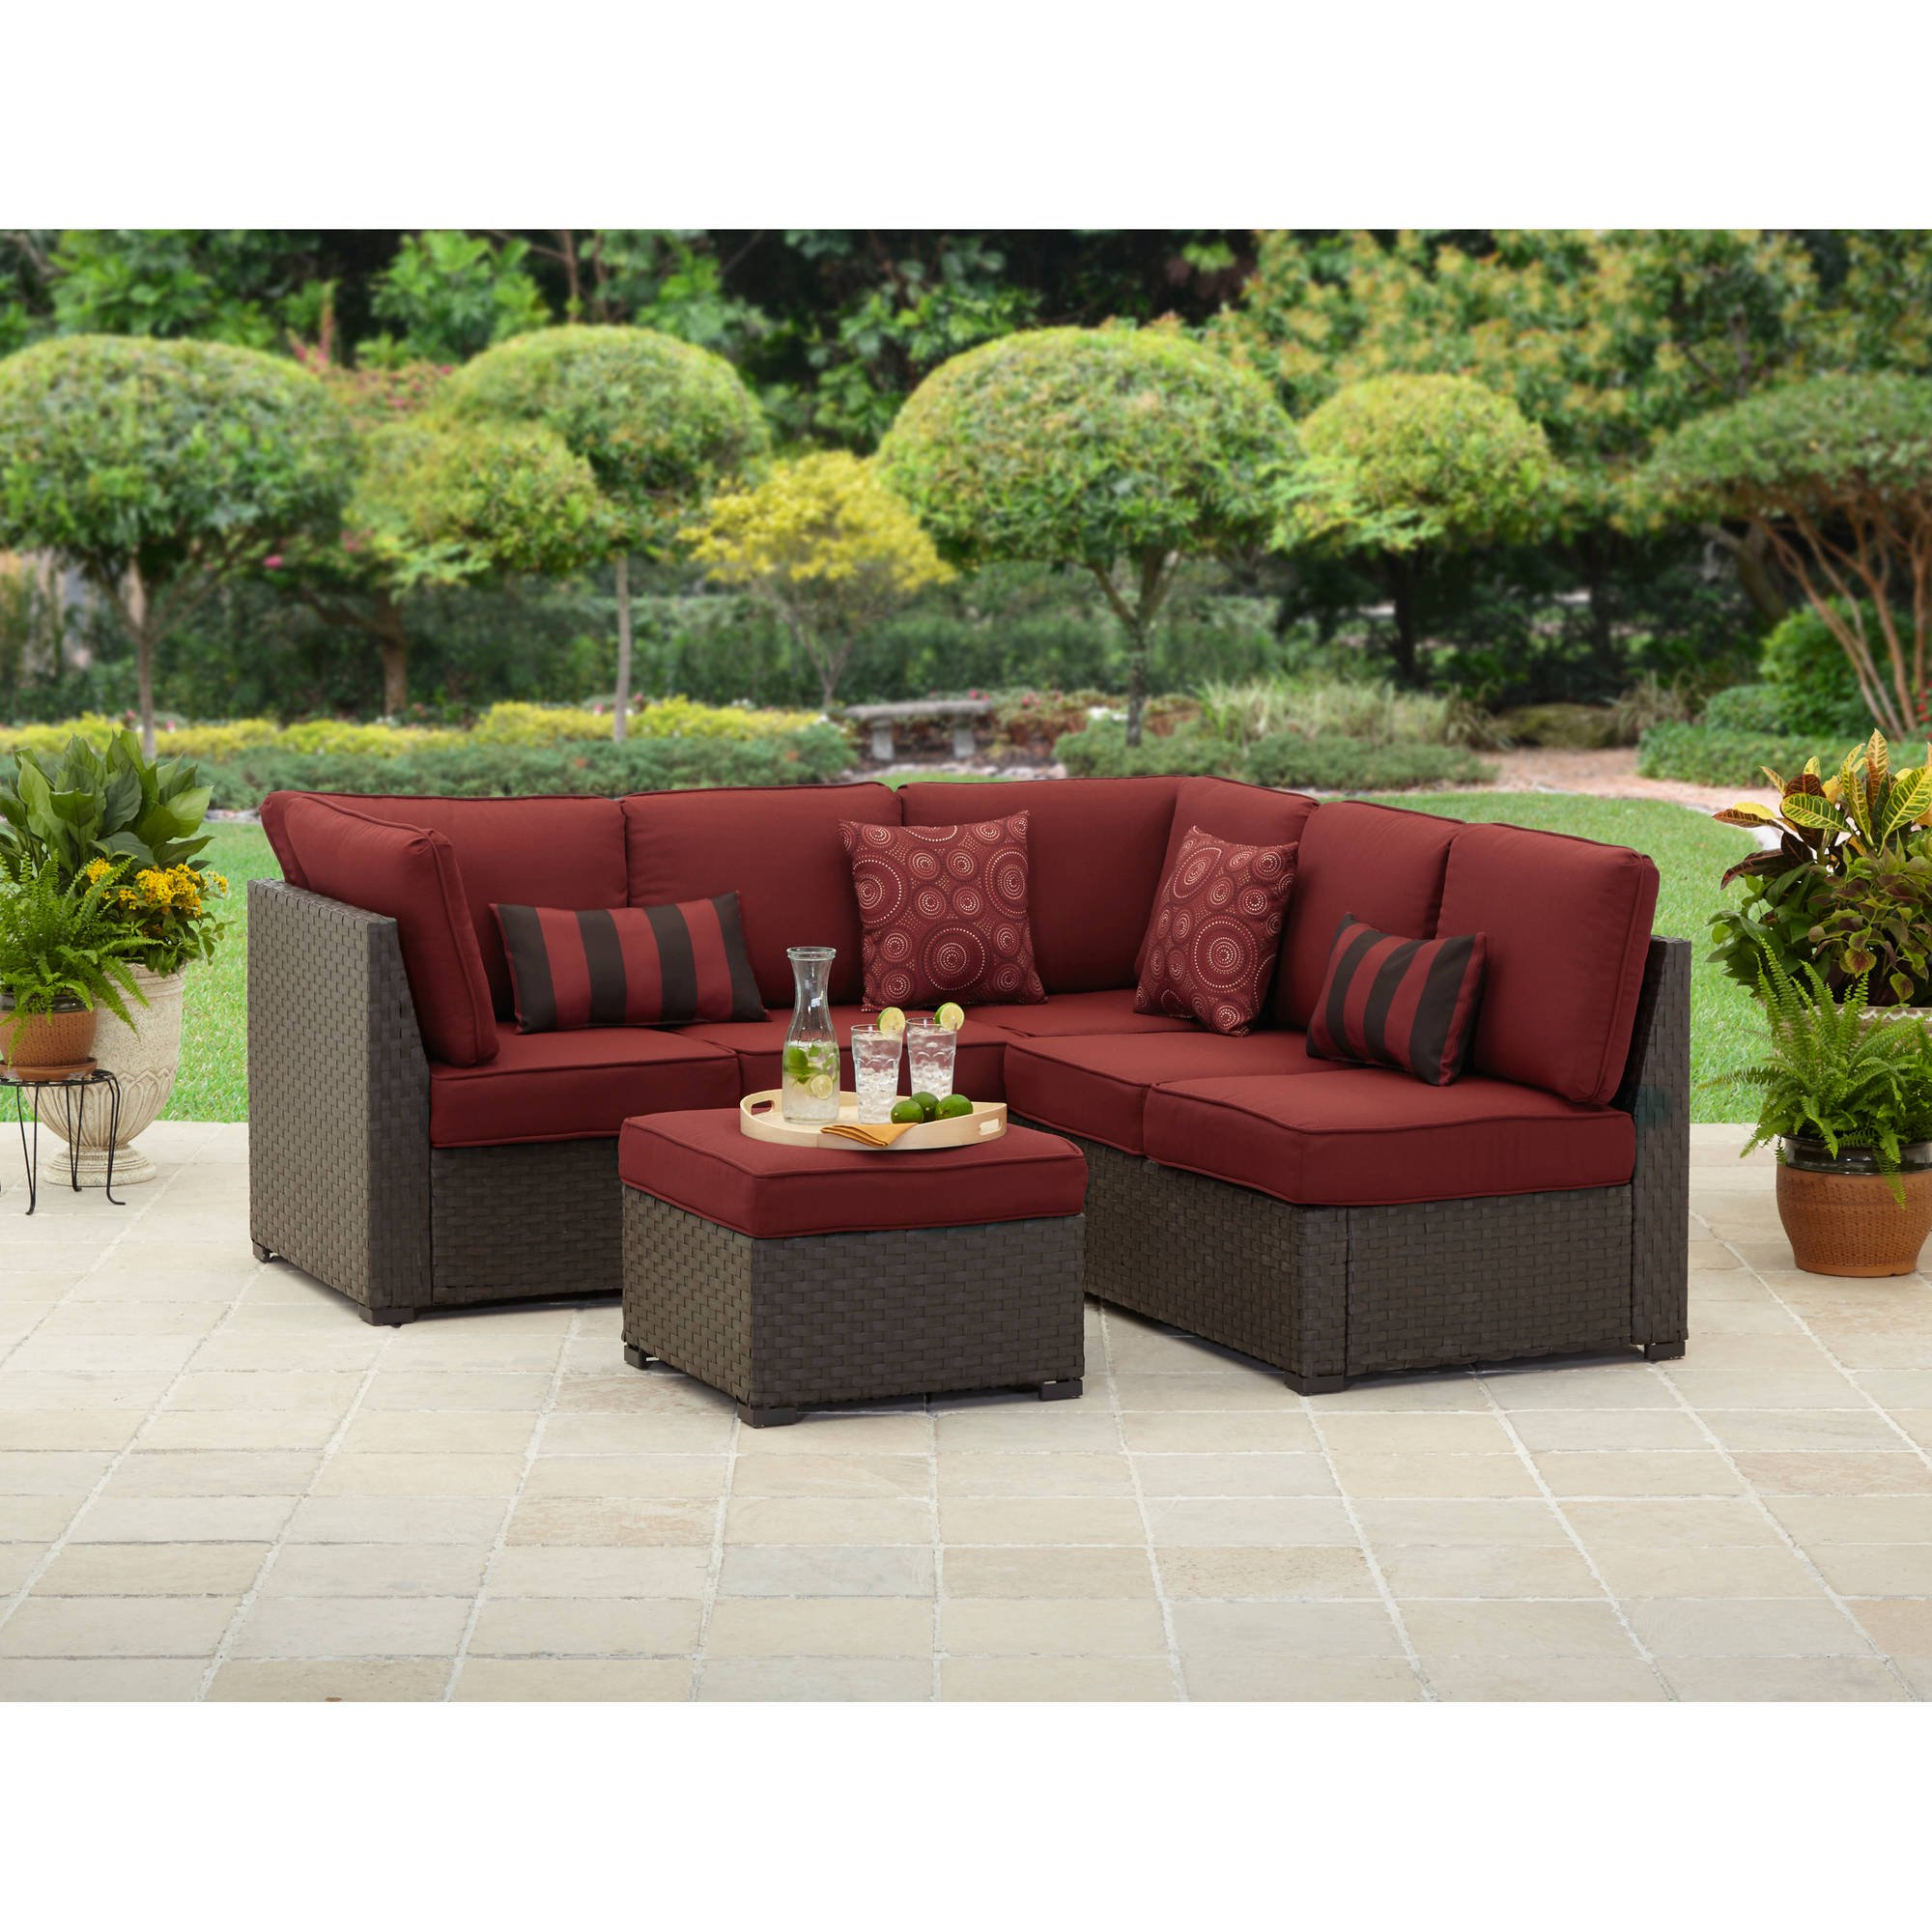 Genial Details About Patio Furniture Sets Clearance 3 Piece Outdoor Woven Wicker  Lawn Balcony Pet Bar